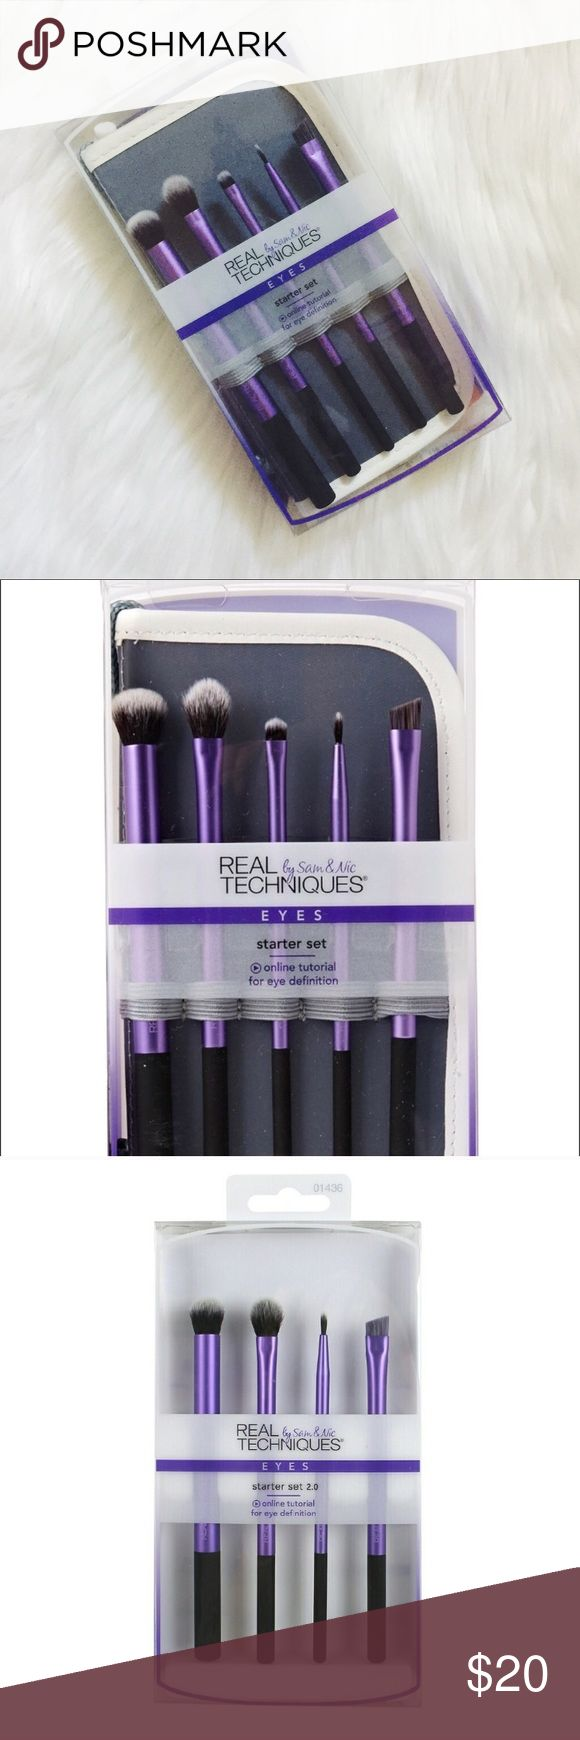 🆕 | Real Techniques Brush Set ✖️ BNIB Real Techniques  Brush Set  ✖️ Eyeshadow Brush Set  ✖️ Eyebrow Brush Set  ✖️ 5 Pieces Total  ✖️ Comes w/ Protective Case ✖️ 15% Off 2 Items Or More Sephora Makeup Brushes & Tools